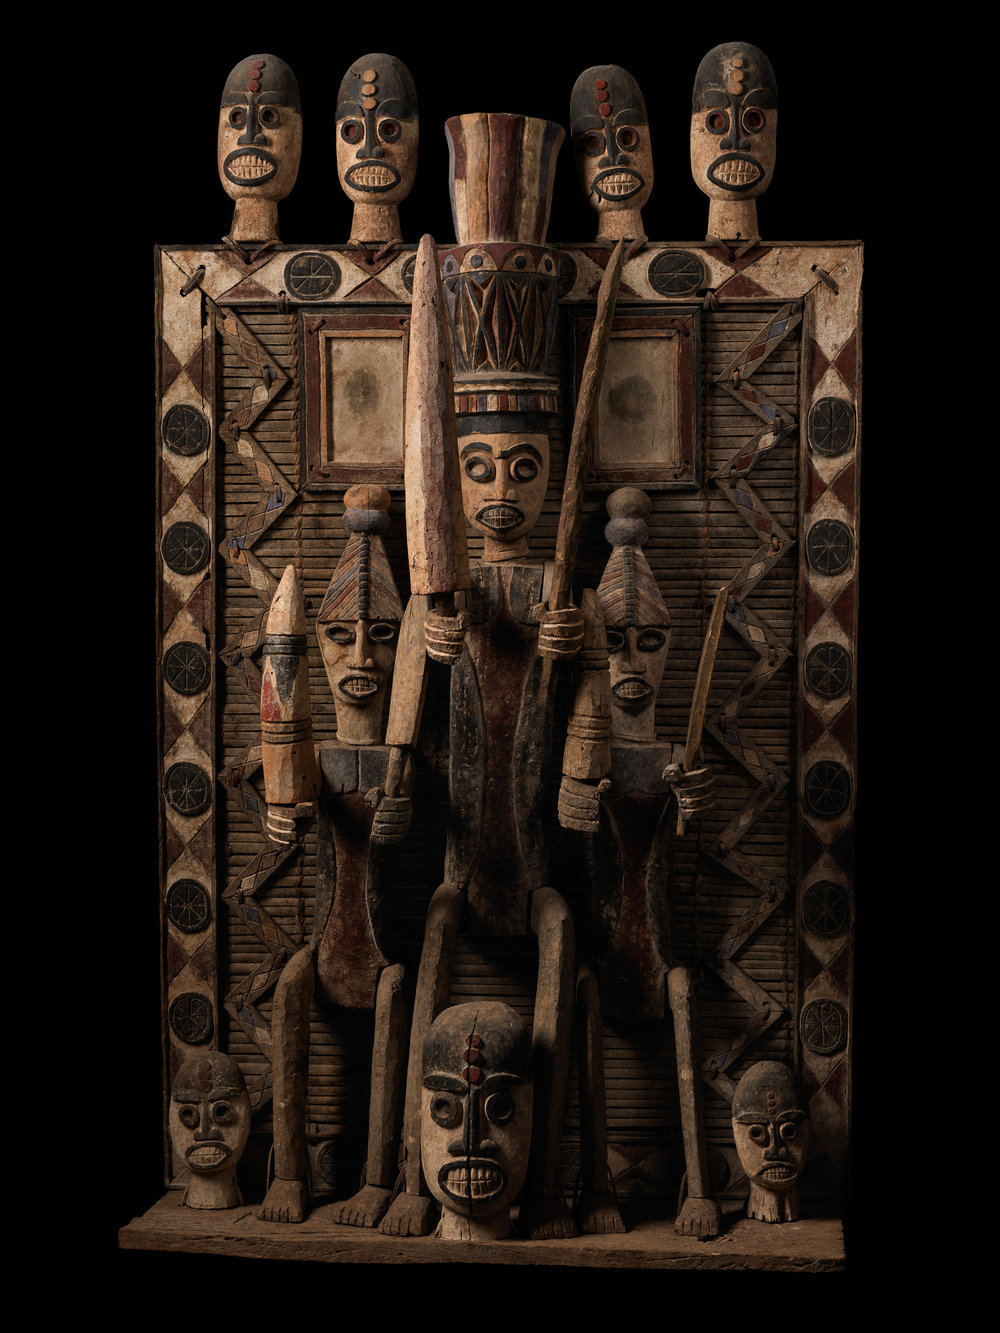 Shrine panel Nigeria, Kalabari group Ijo people, mid-20th century  Carved wood, rattan, raffia, natural polychrome pigments Ann Porteus, Sidewalk Tribal Gallery